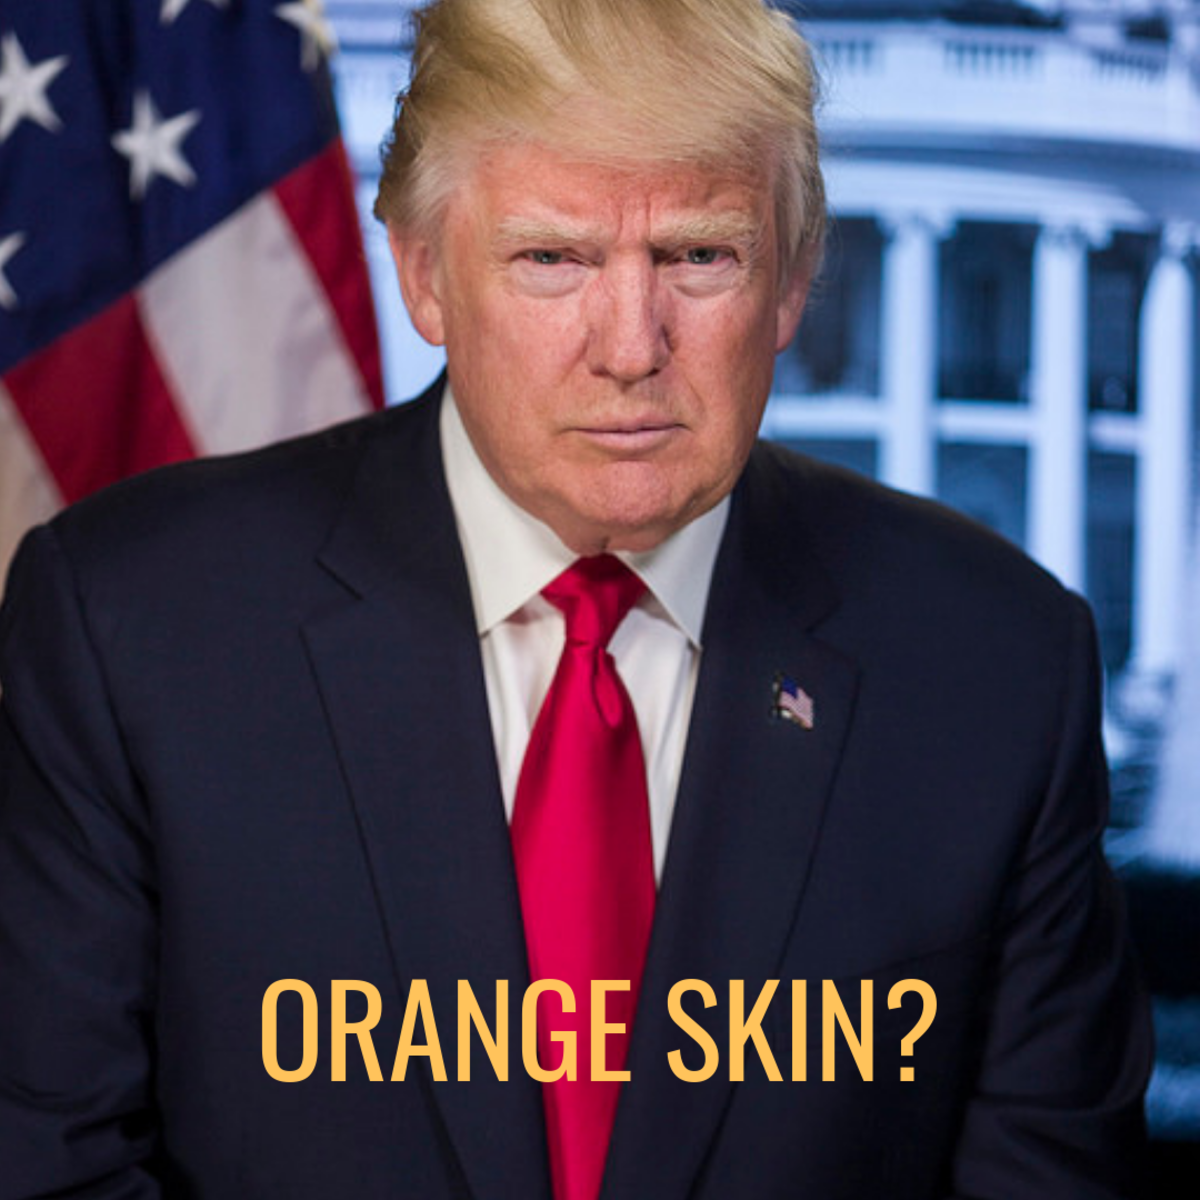 Why Is Trump's Skin Orange?